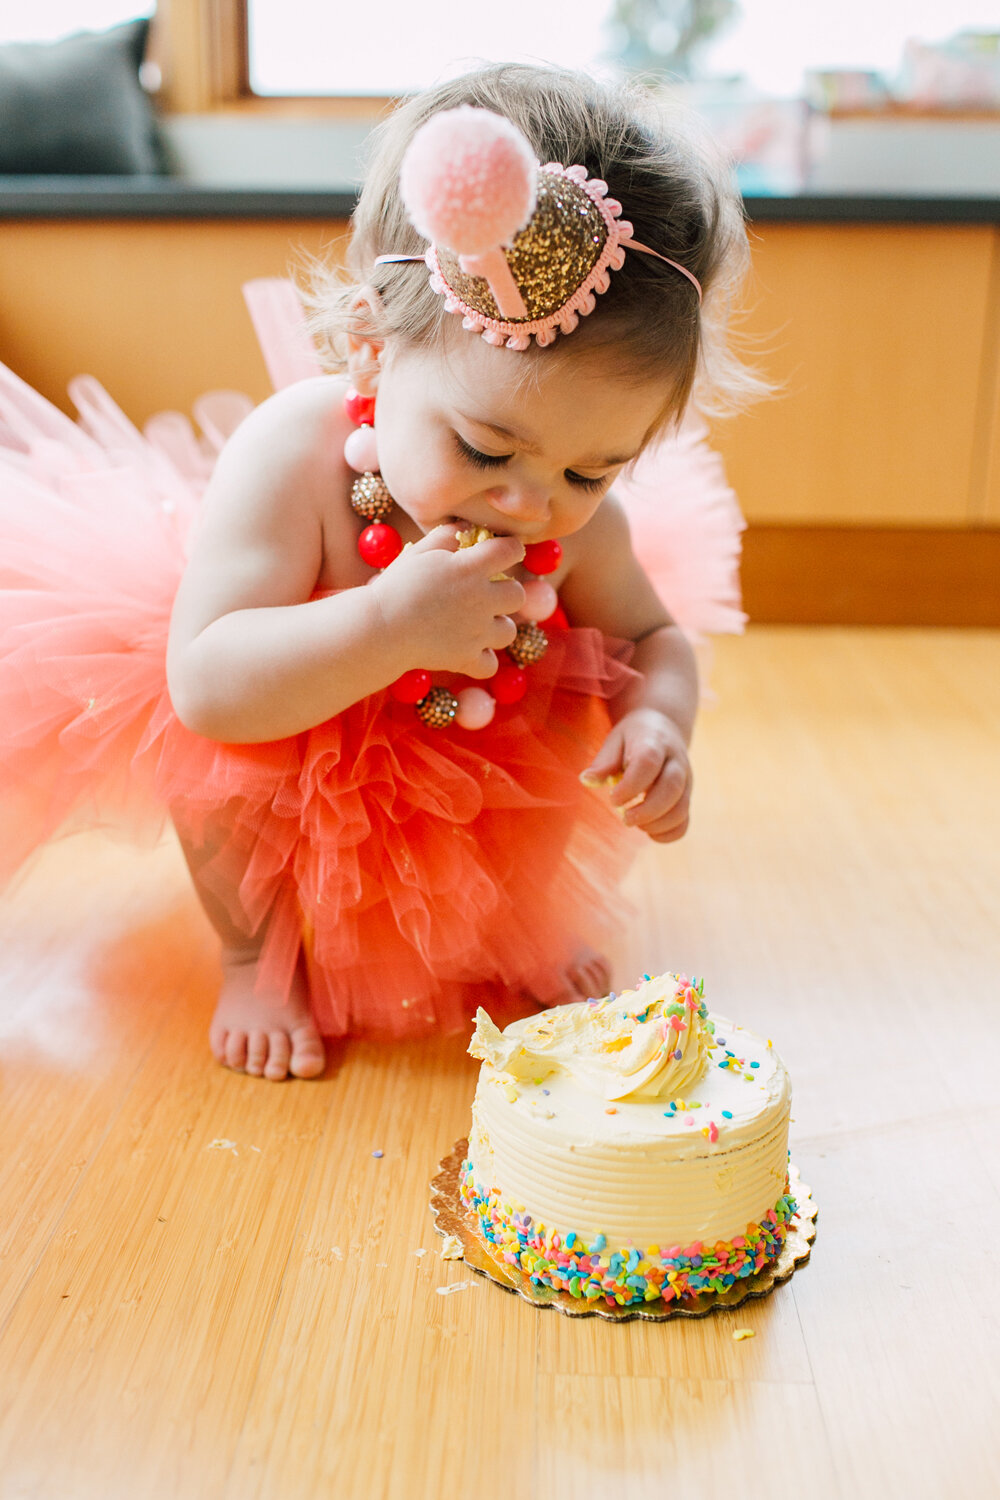 021-bellingham-one-year-cake-smash-photographer-katheryn-moran-emery.jpg